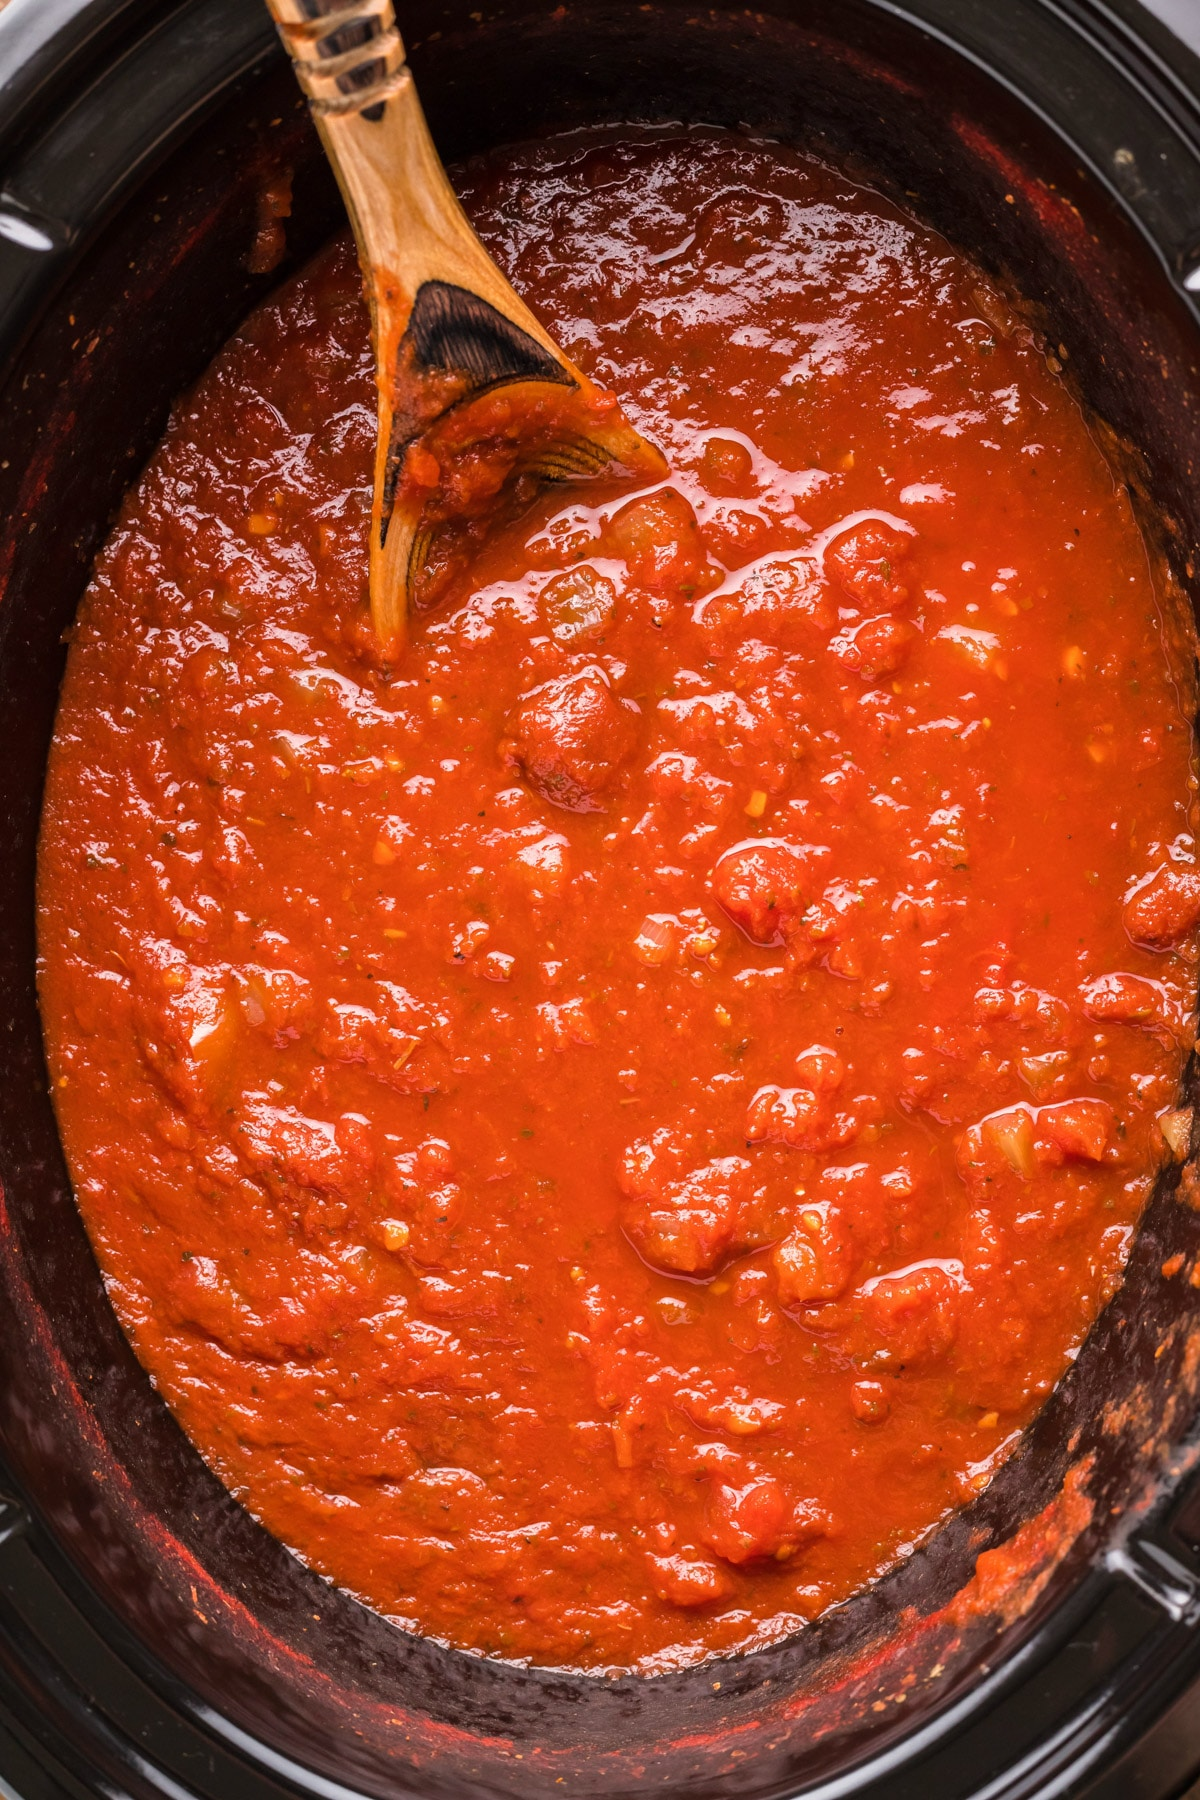 marinara sauce in slow cooker, done cooking